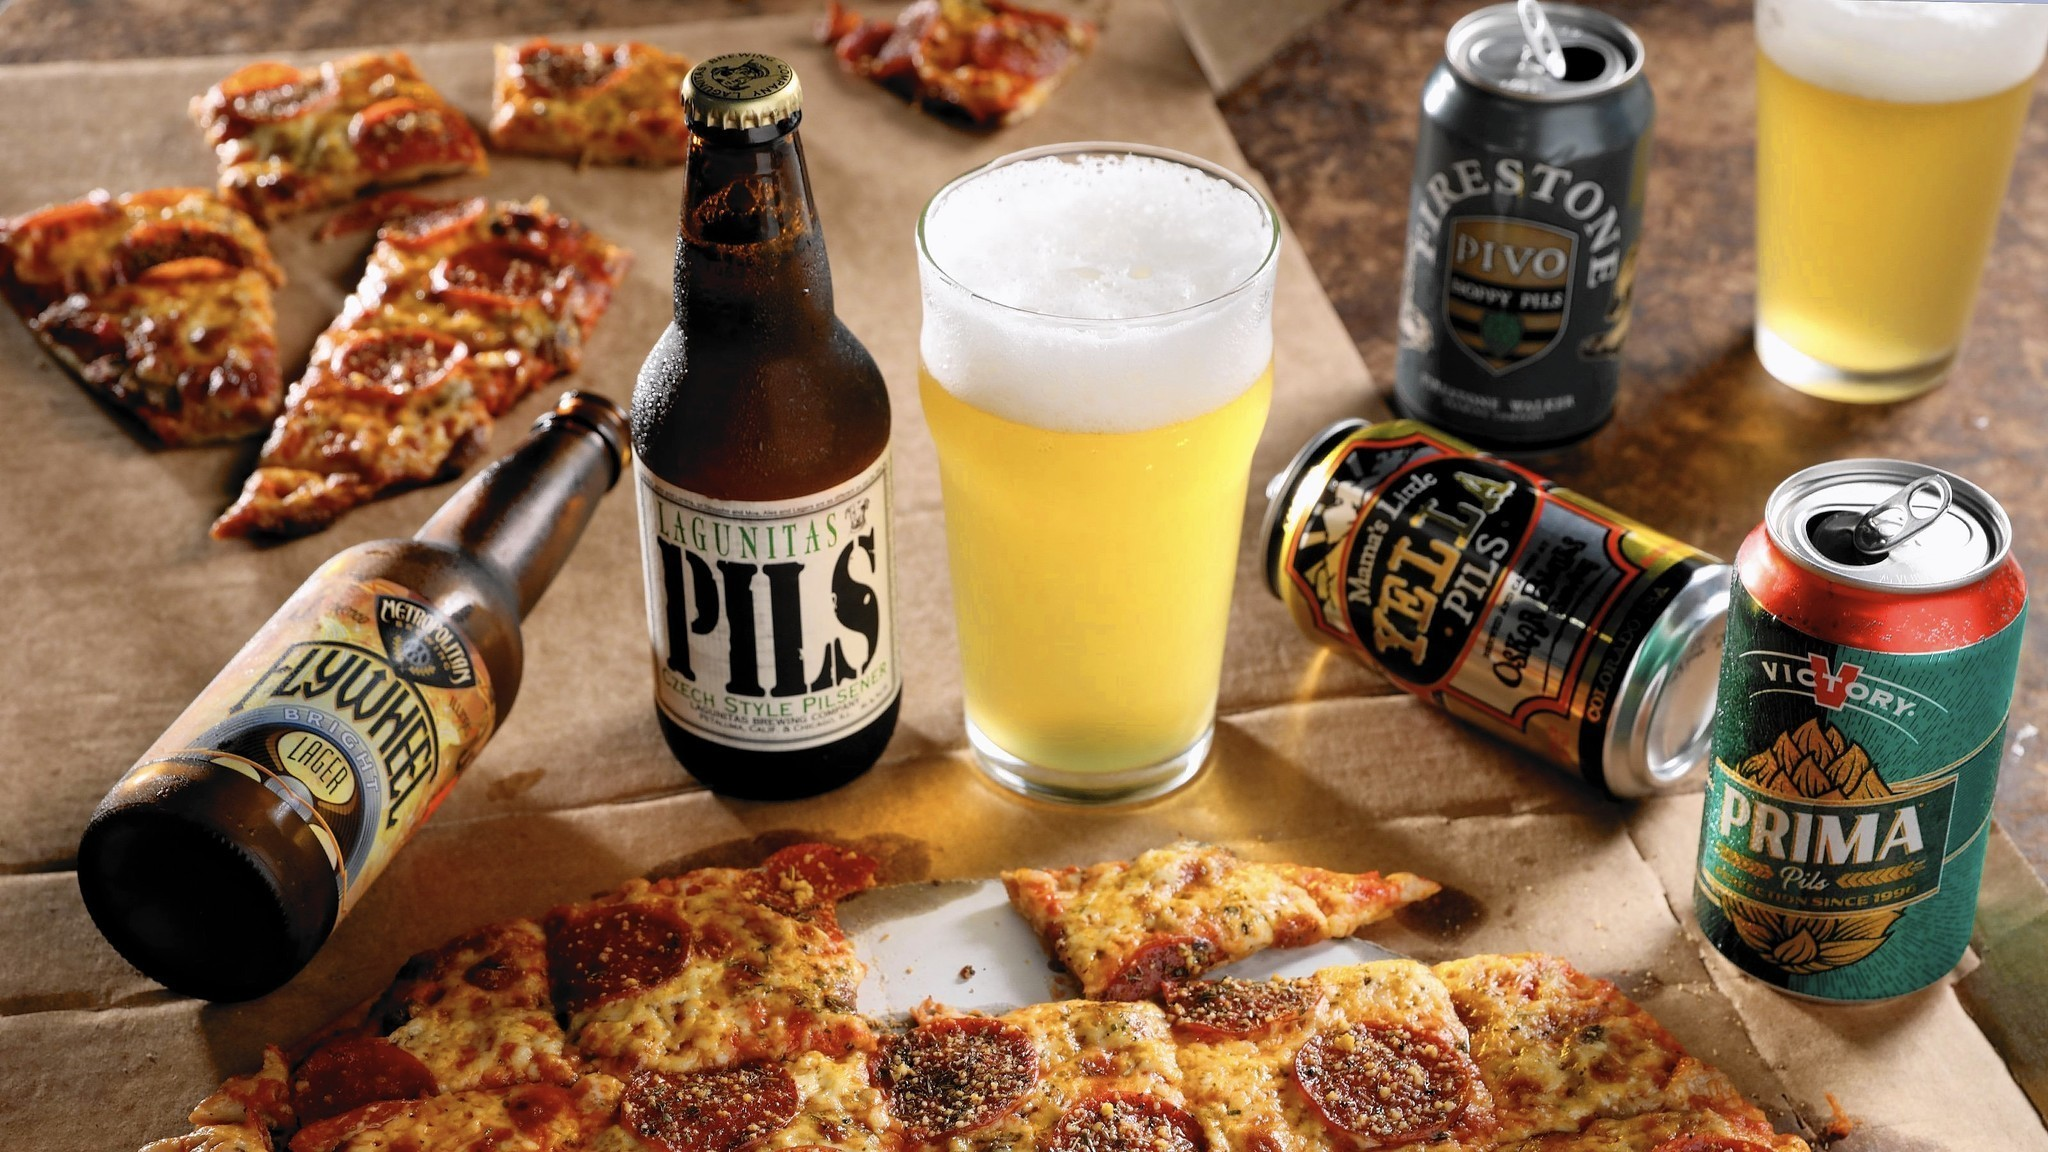 Weekend Wallpaper Hd 5 Beer Styles That Go Perfectly With 5 Pizza Styles